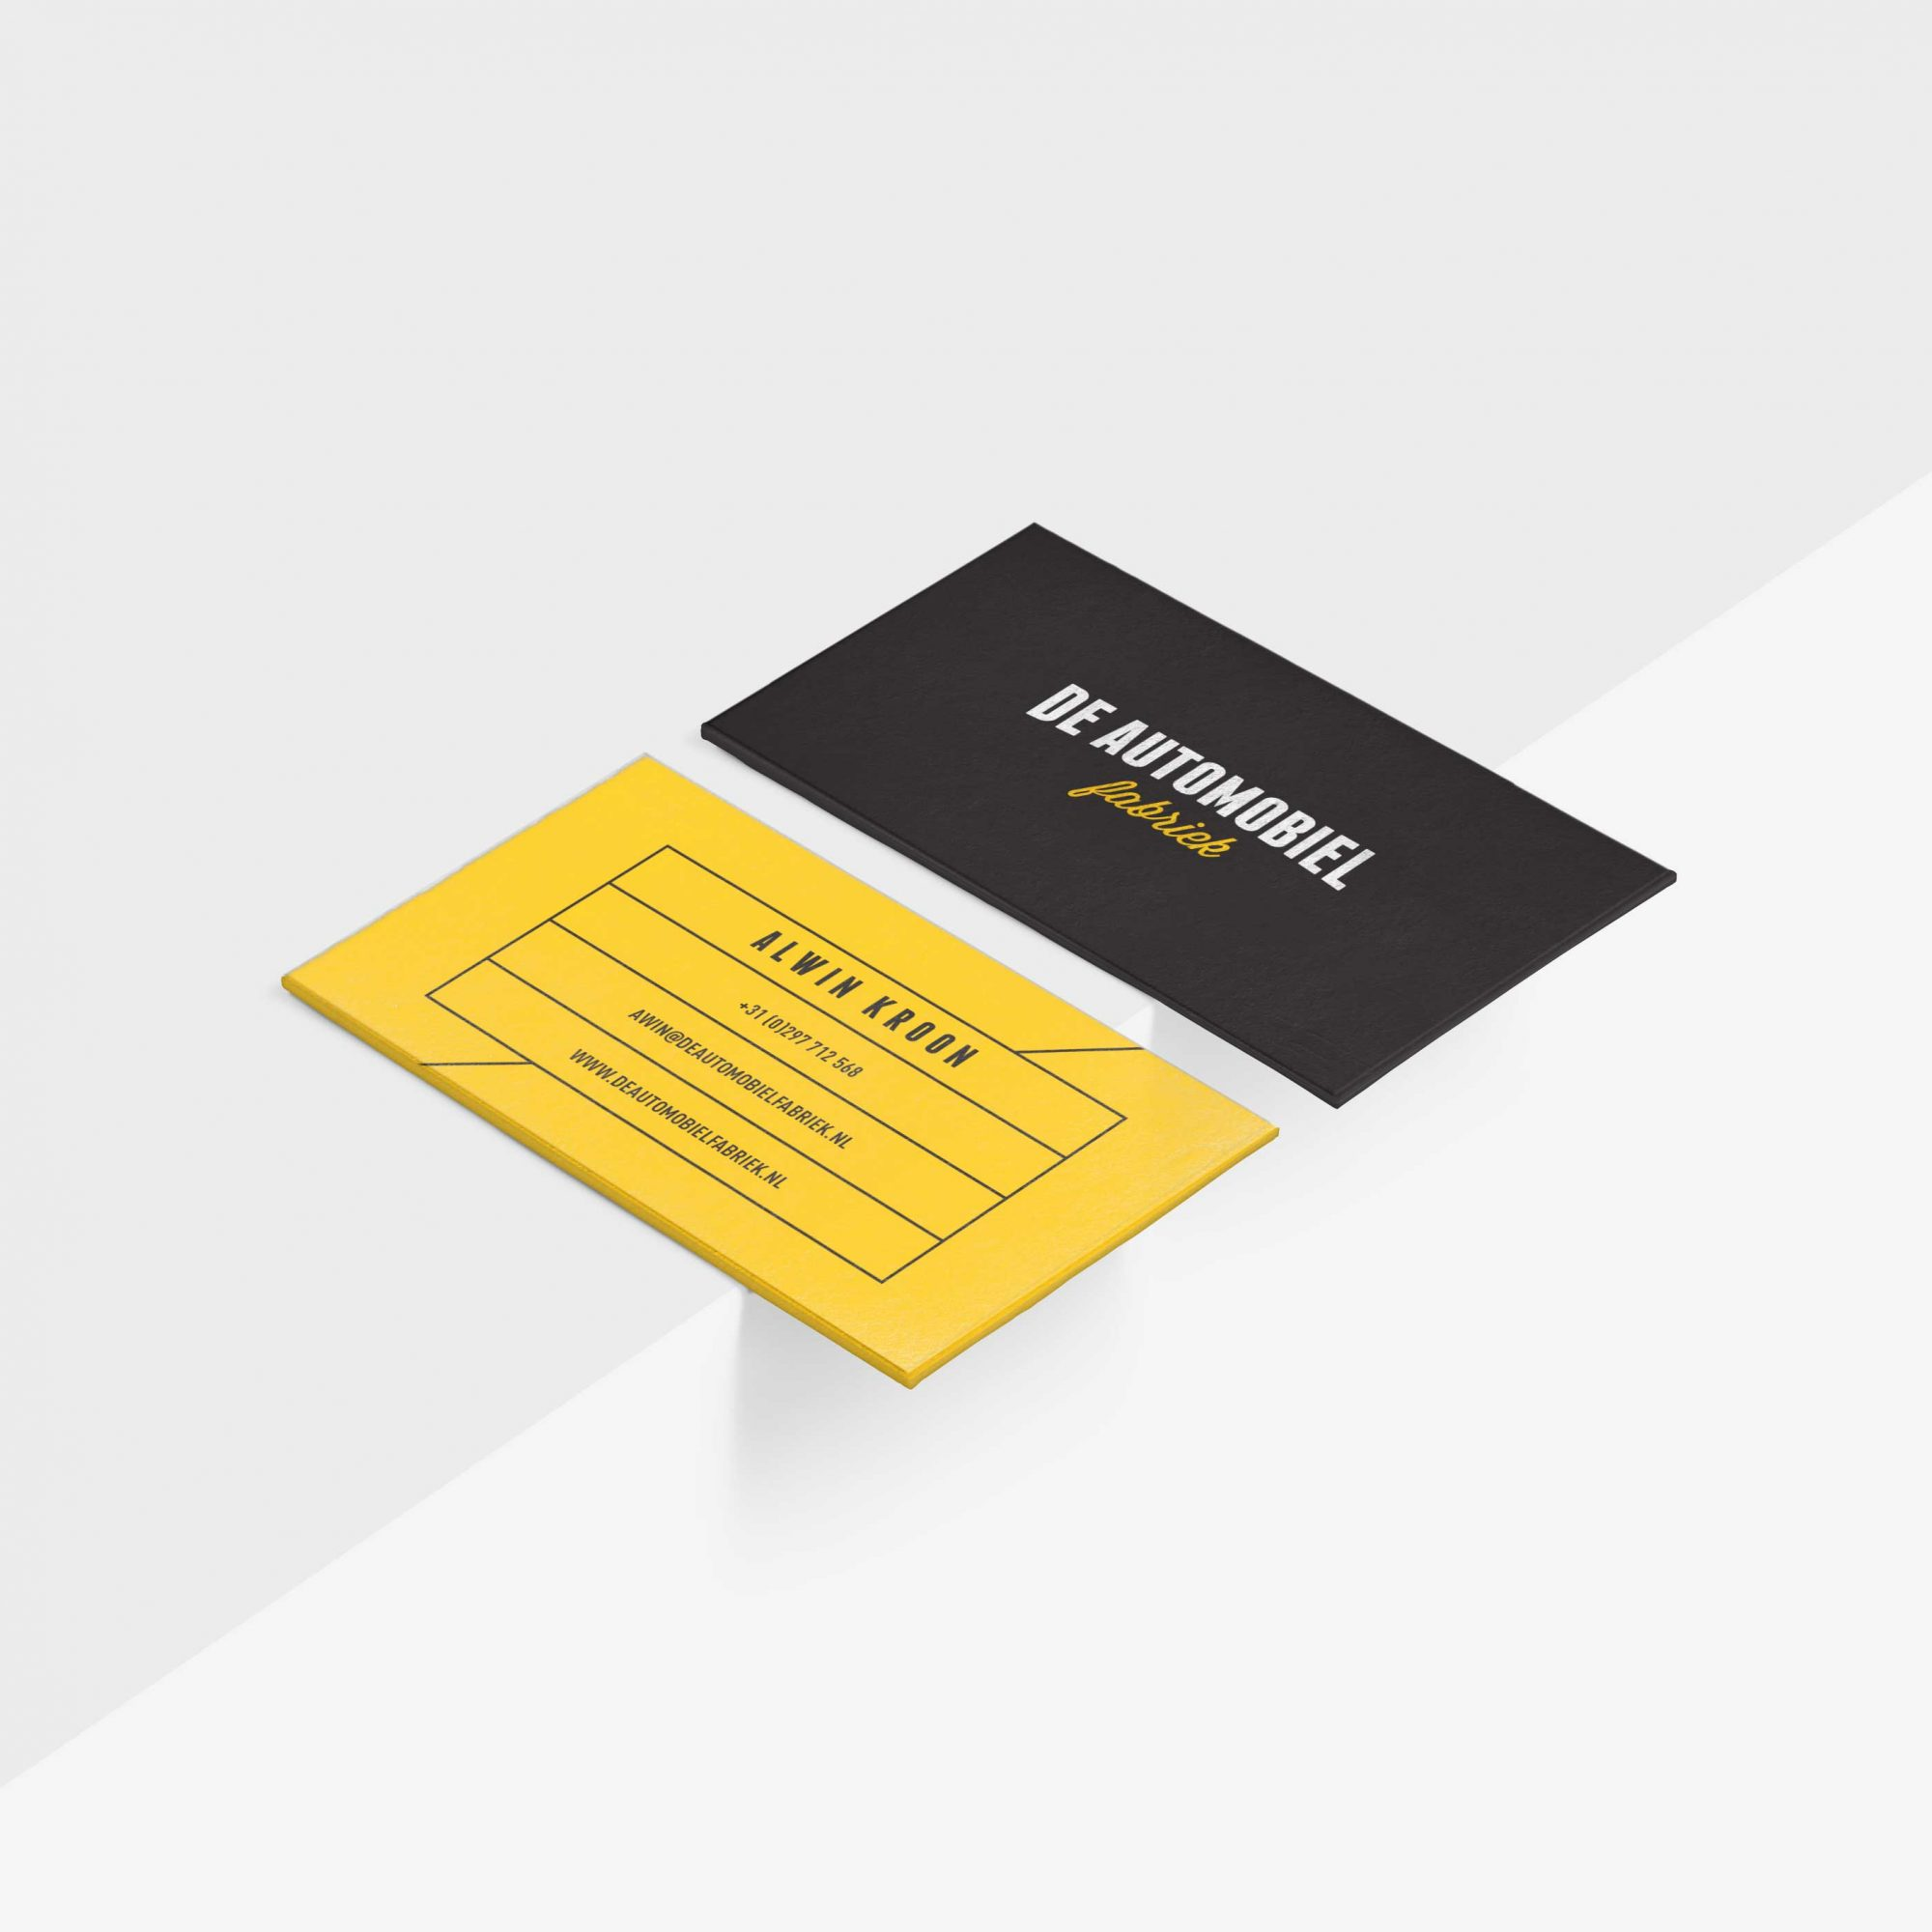 De Automobielfabriek Business Cards